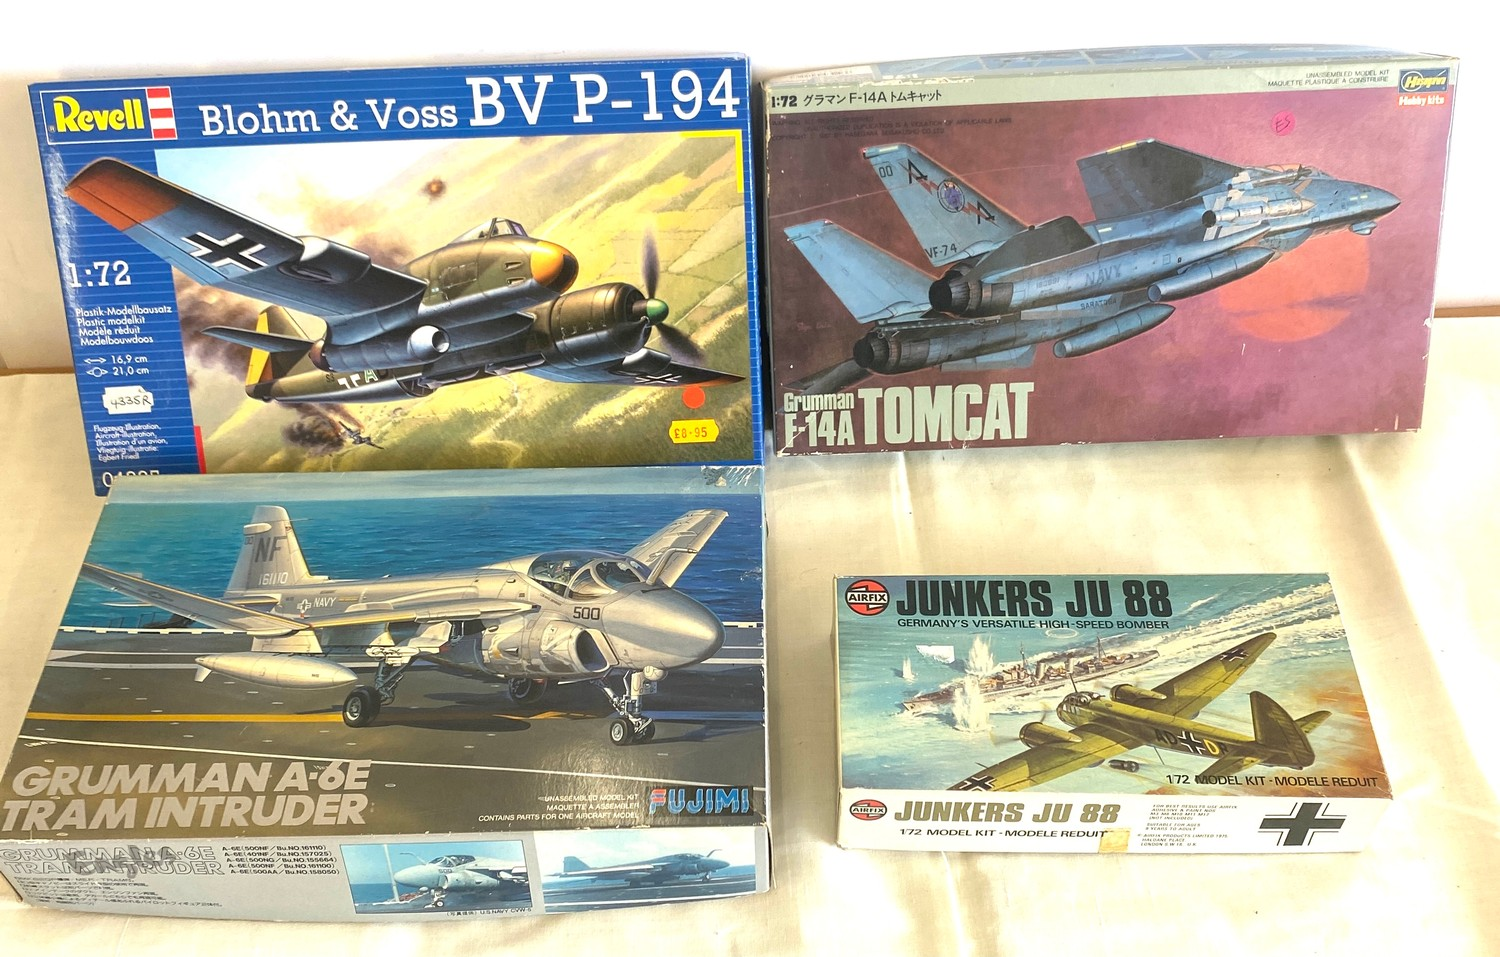 Selection of 4 boxed model air crafts includes, Grumman A-6E Tram, Grumman F-14A Tomcat, Revell